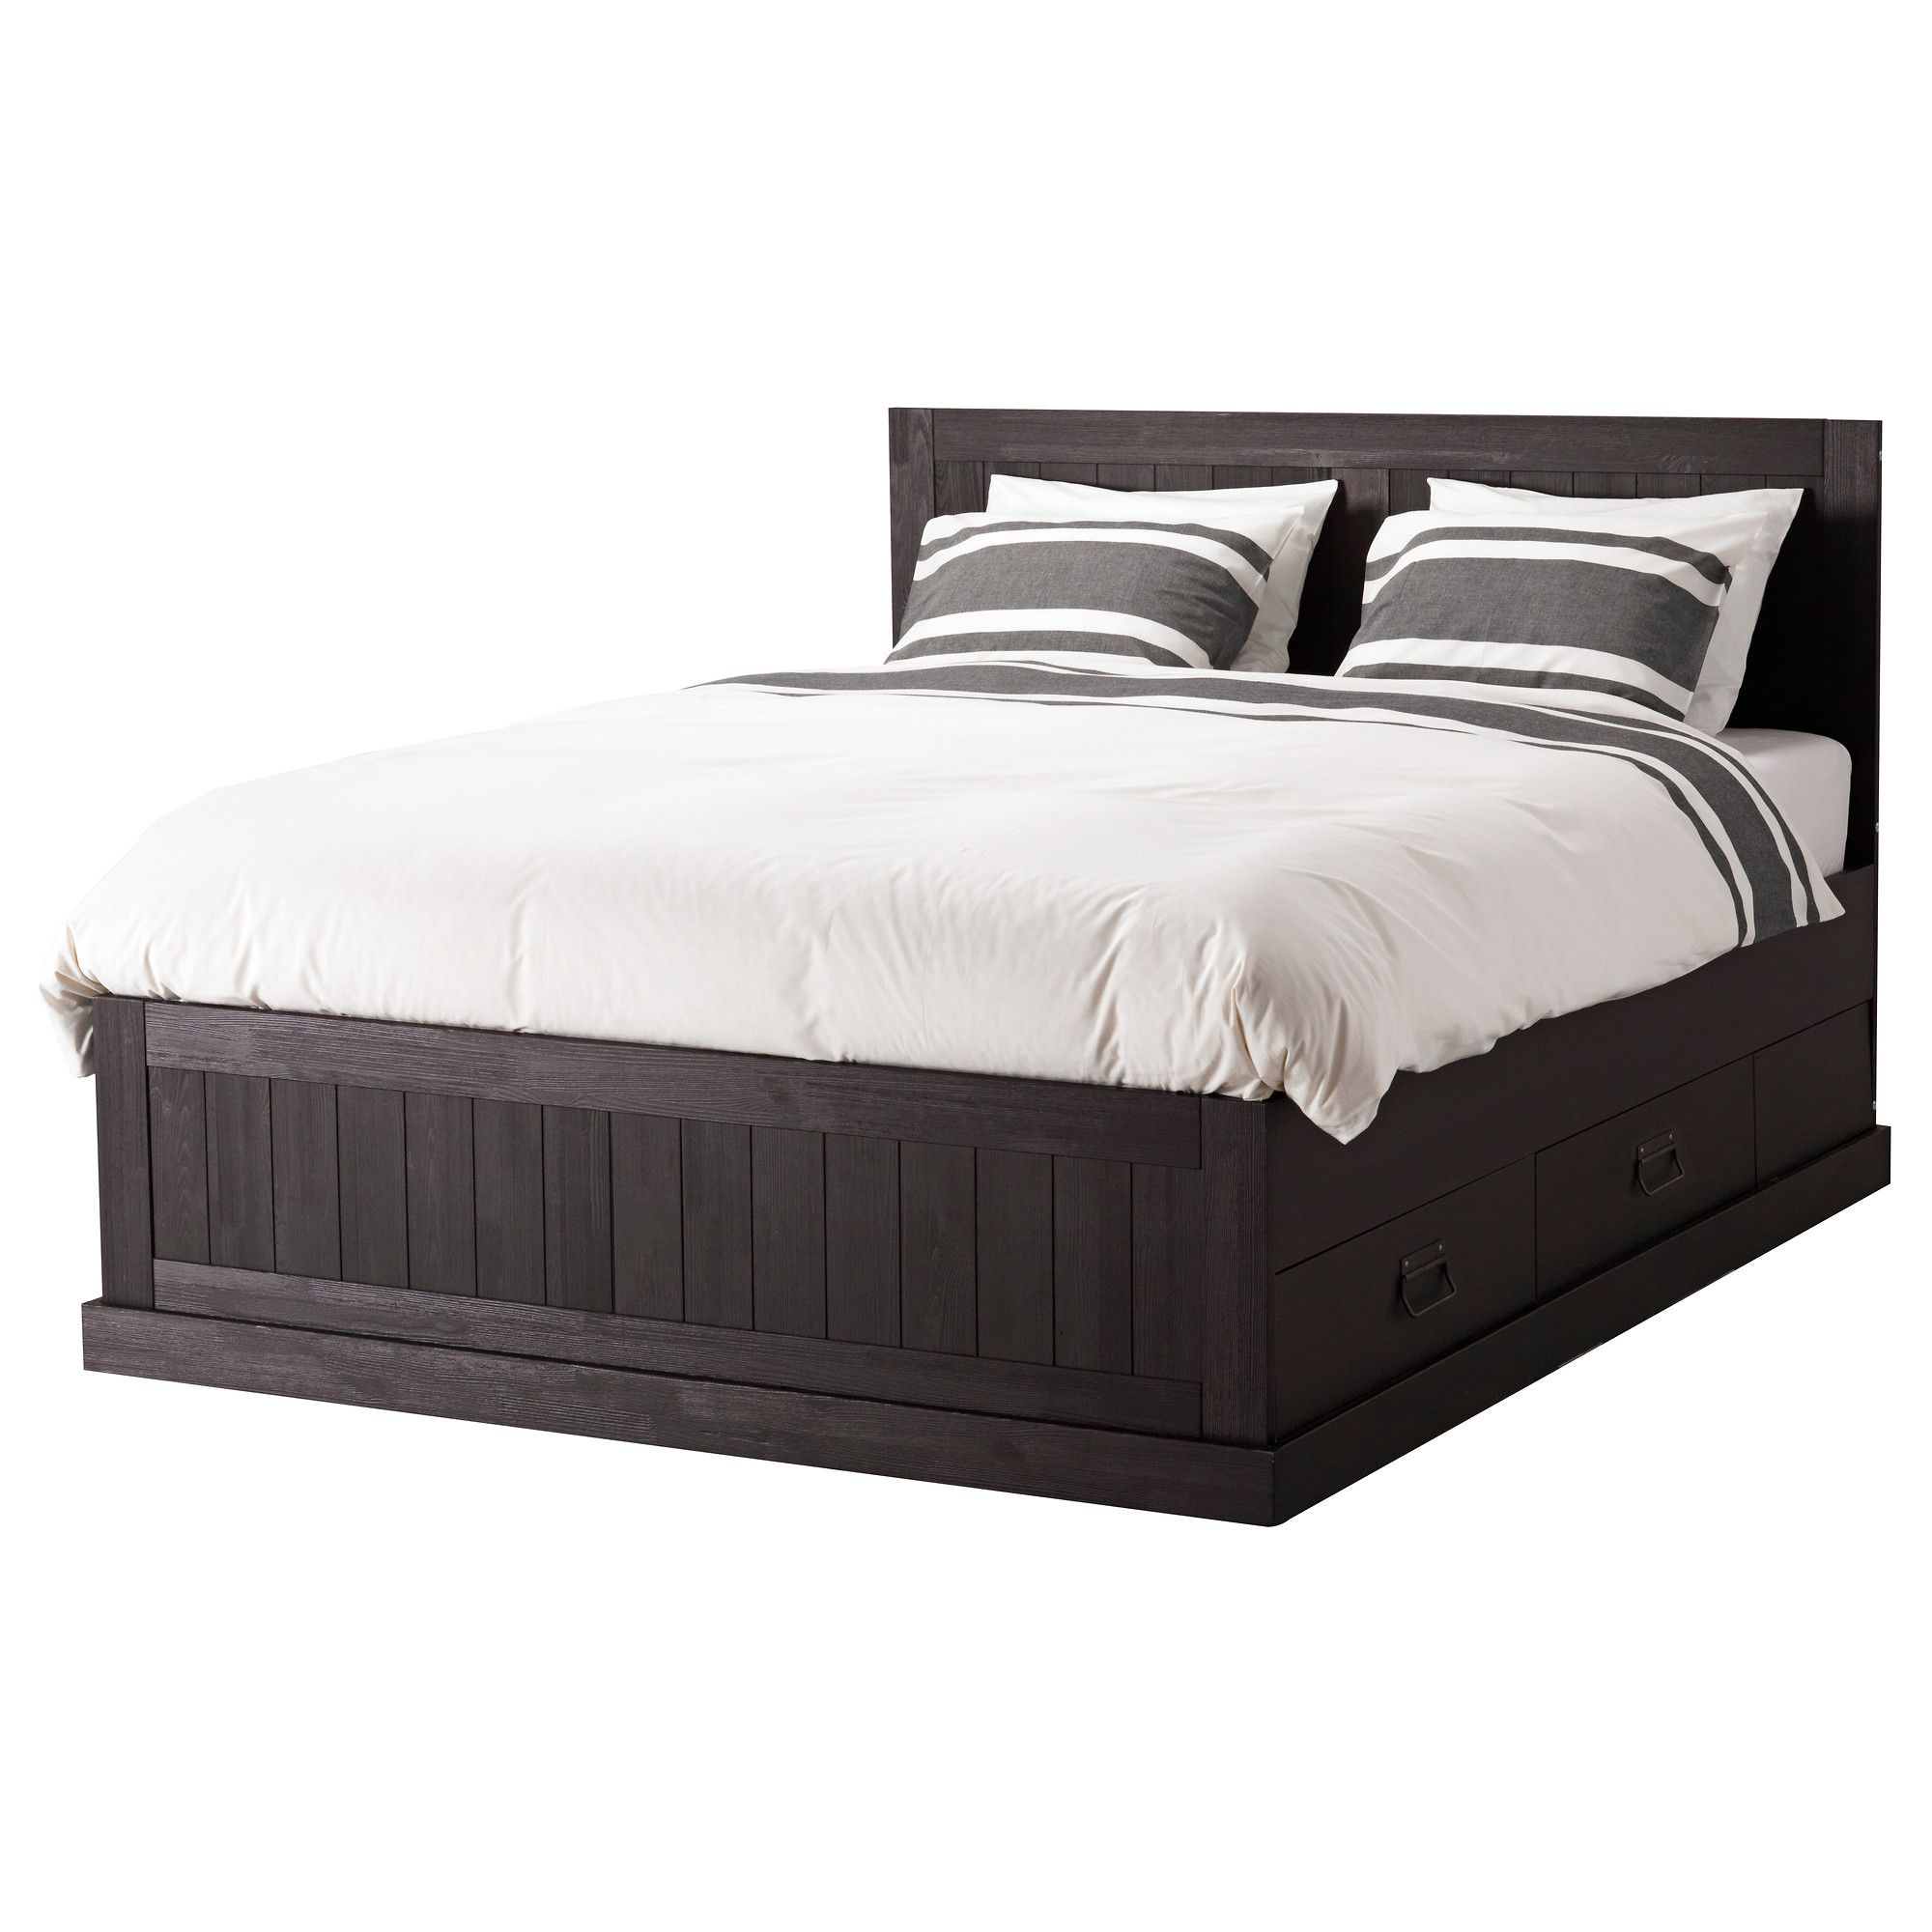 Ikea Us Furniture And Home Furnishings Bed Frame With Storage